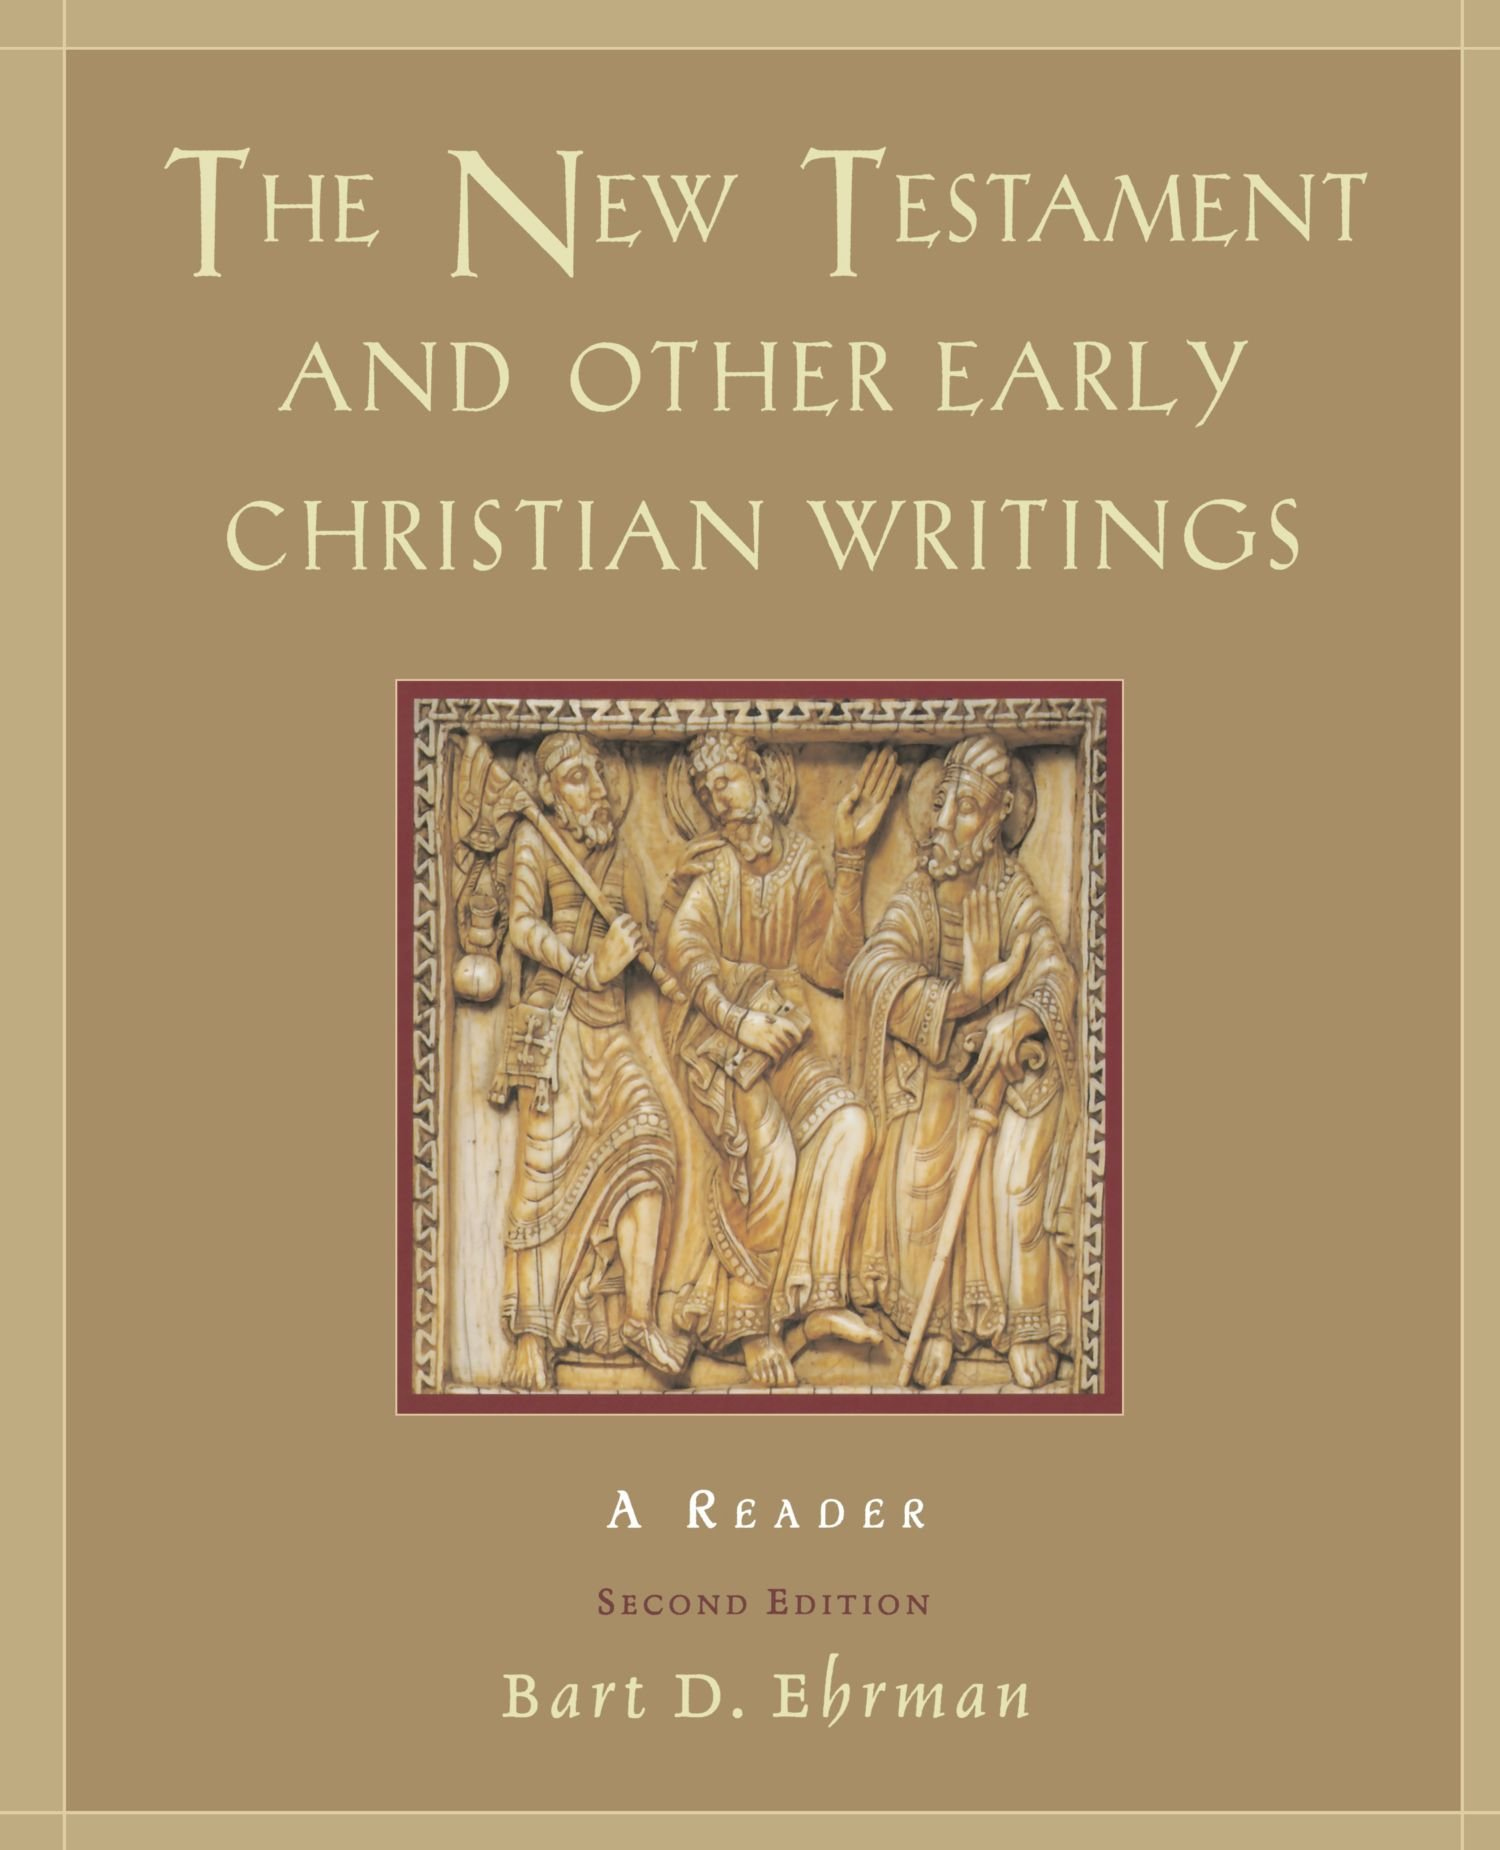 The New Testament and Other Early Christian Writings: A Reader by Bart D Ehrman